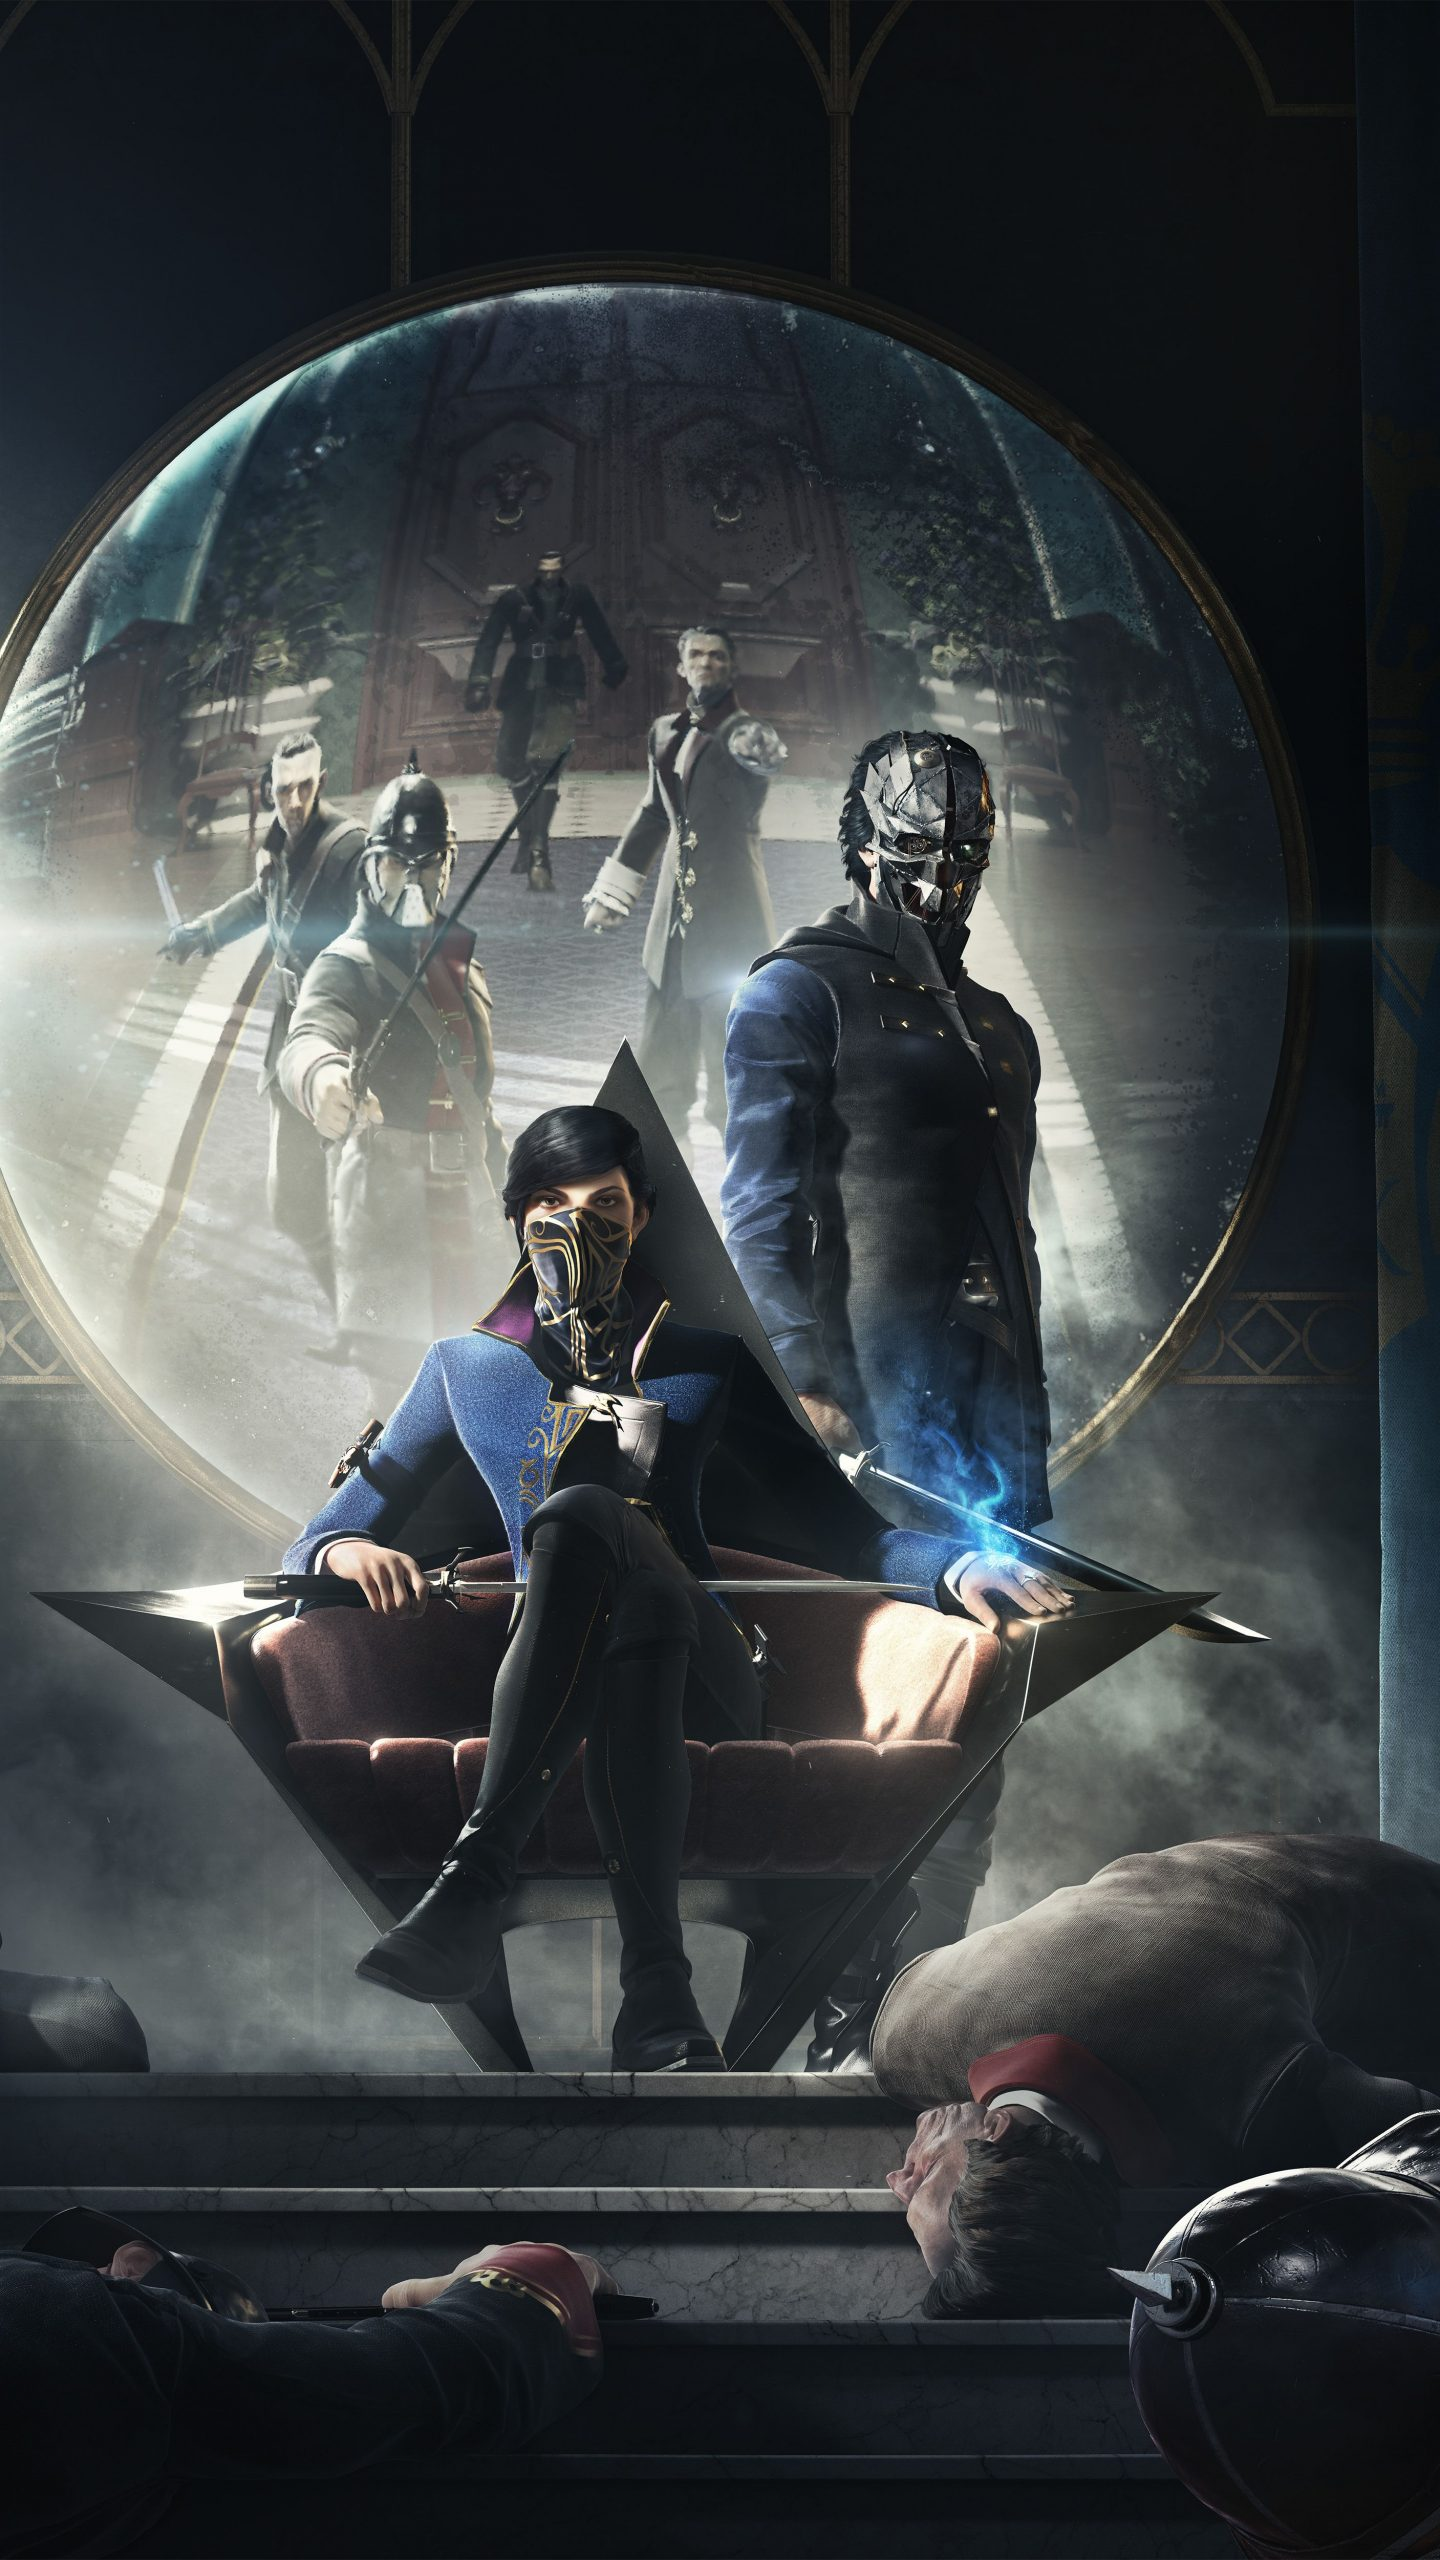 Dishonored 2 Mobile HD Wallpaper